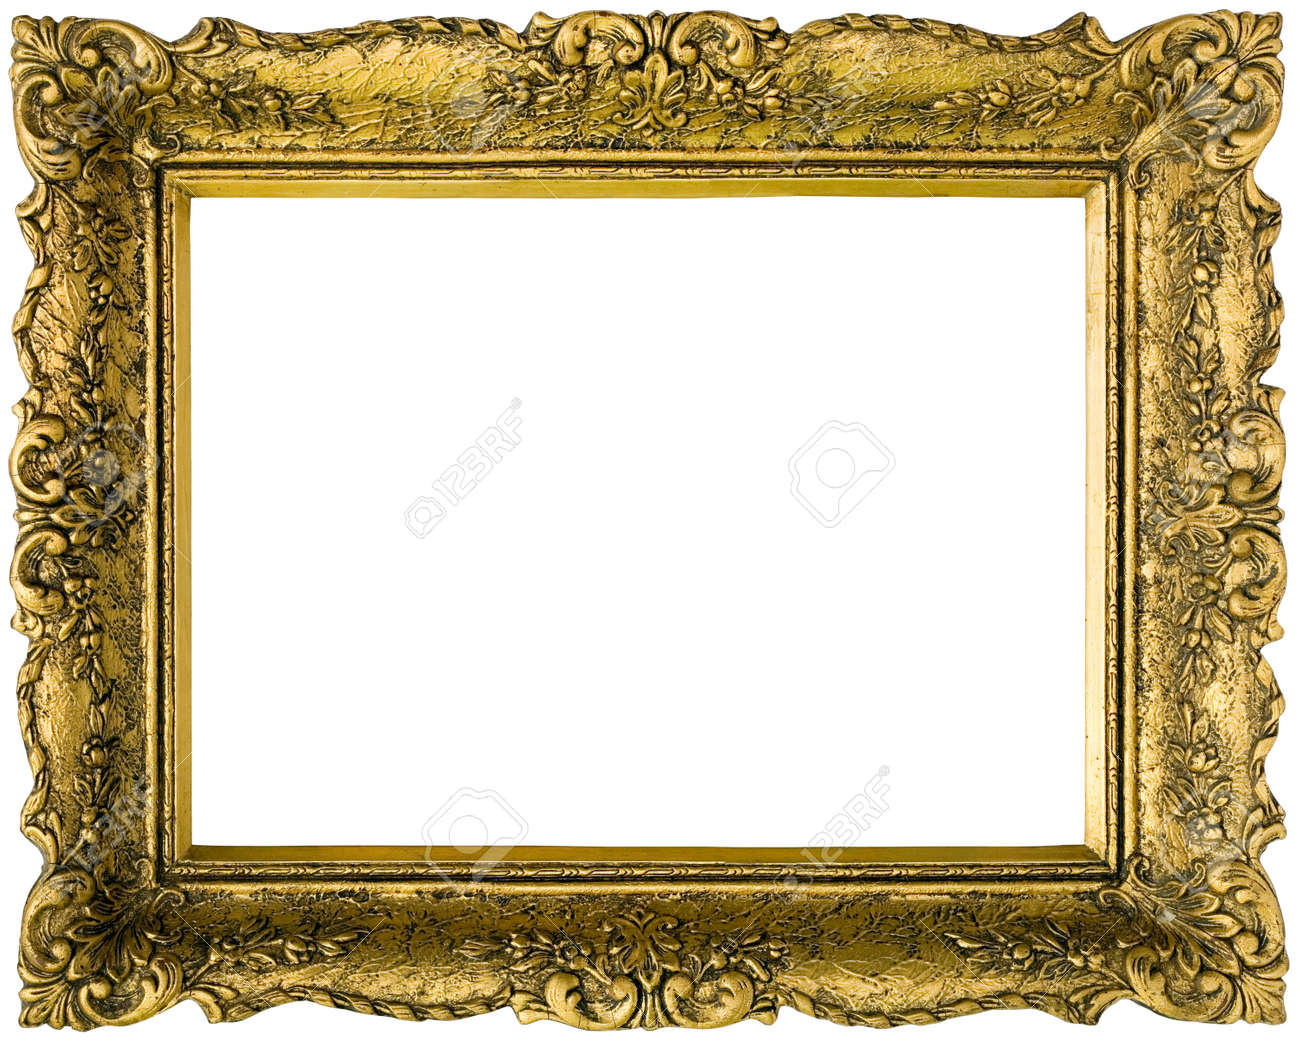 Golden gilded picture frame stock photo picture and royalty free golden gilded picture frame stock photo 14455541 jeuxipadfo Images